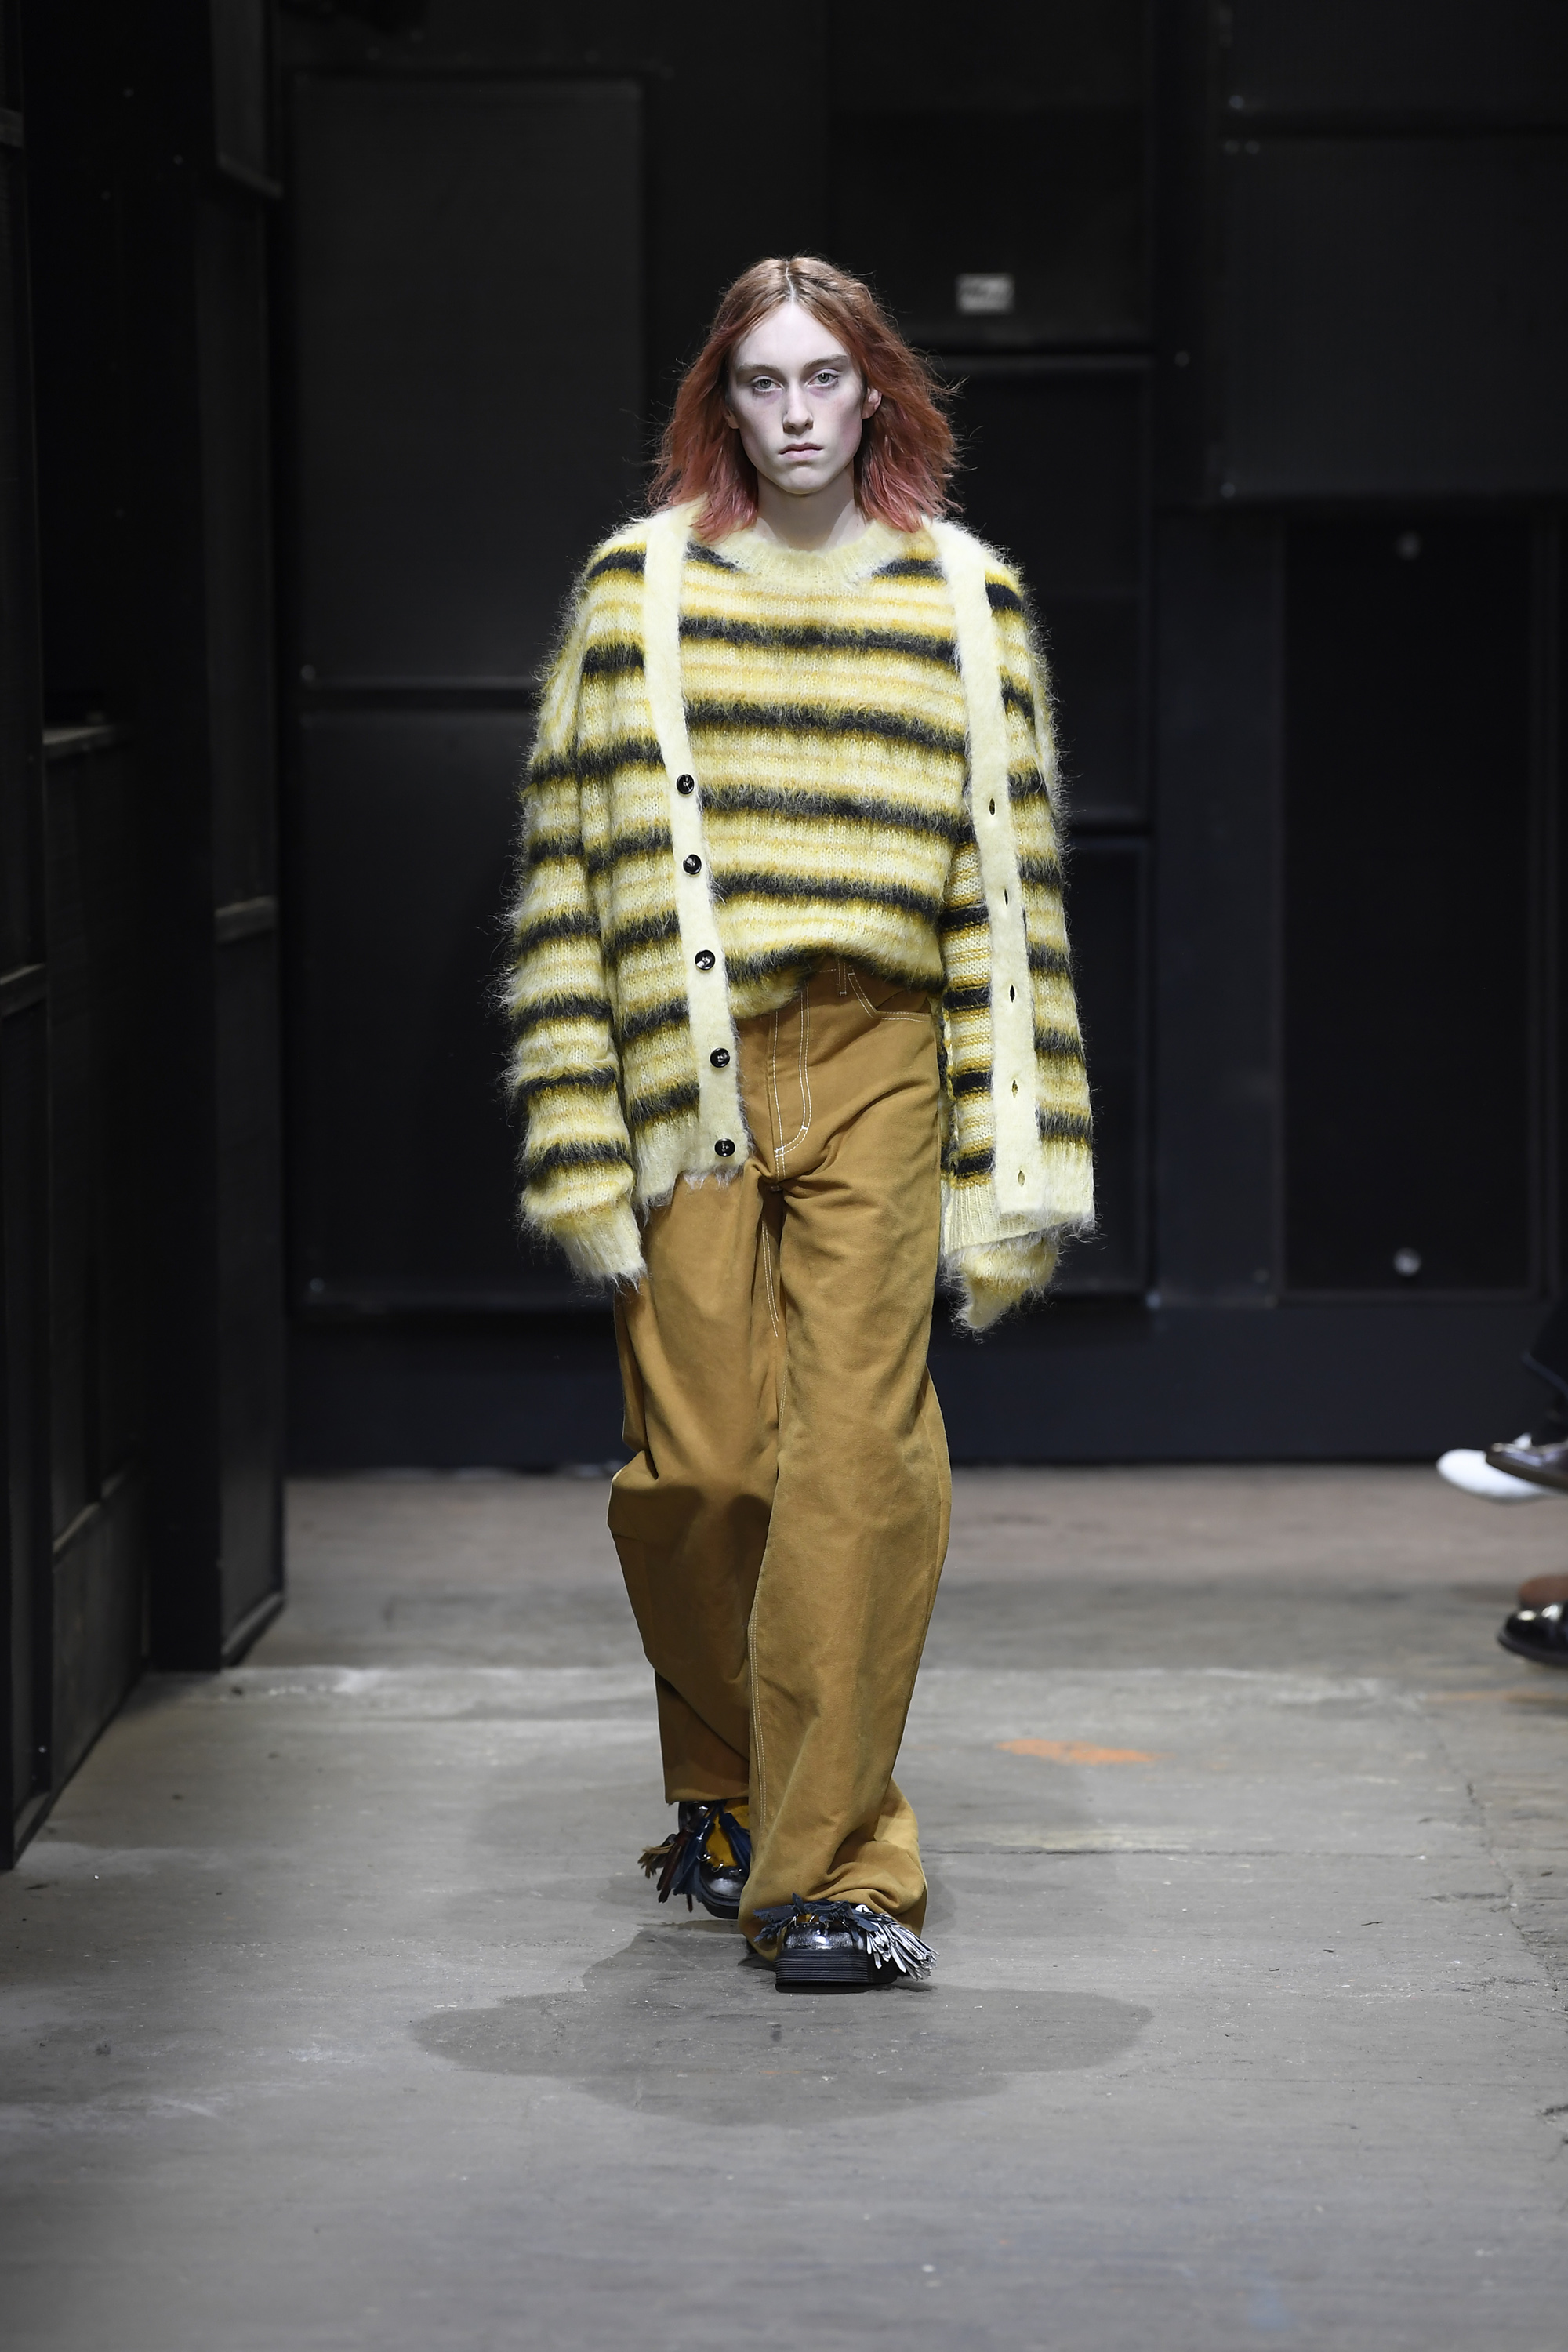 37a7ac52221 Runway Rundown Part 1: The most iconic menswear looks in FW19